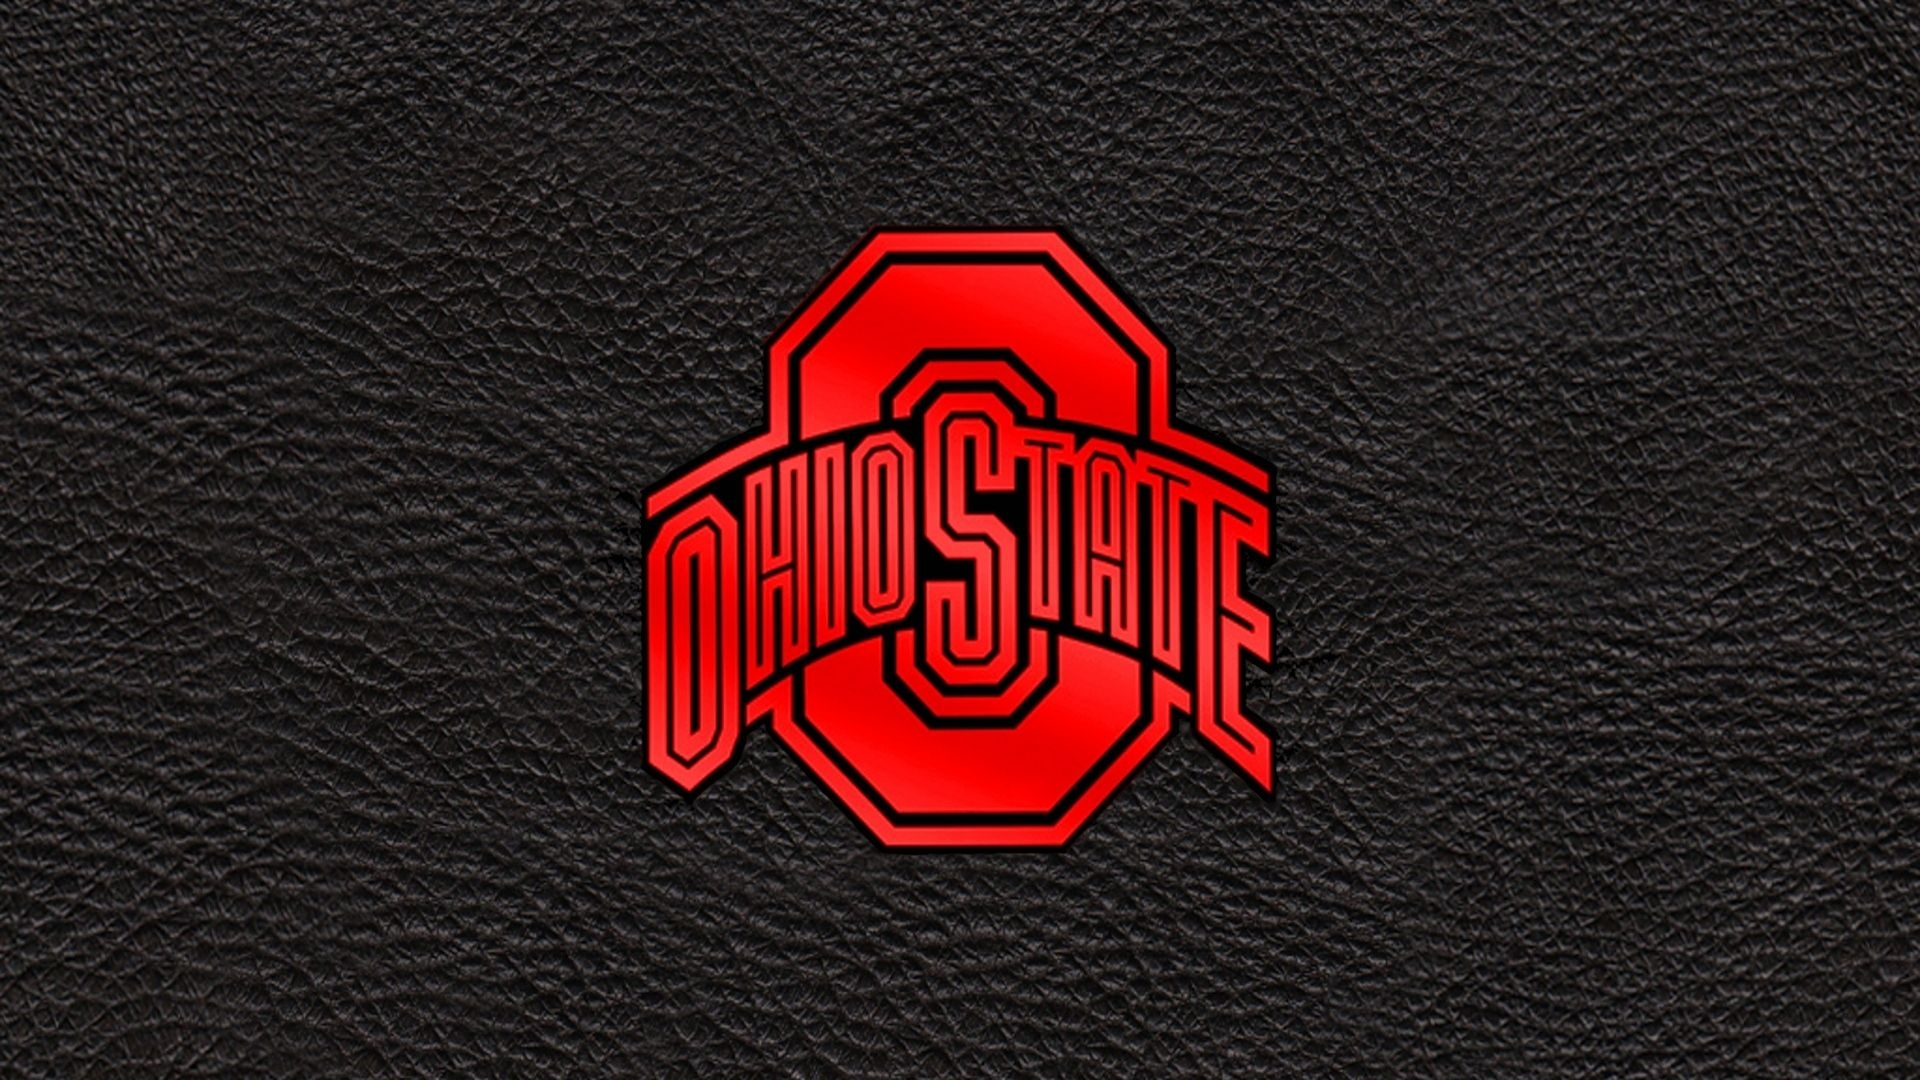 ohio state football wallpaper iphone 6 - download new ohio state